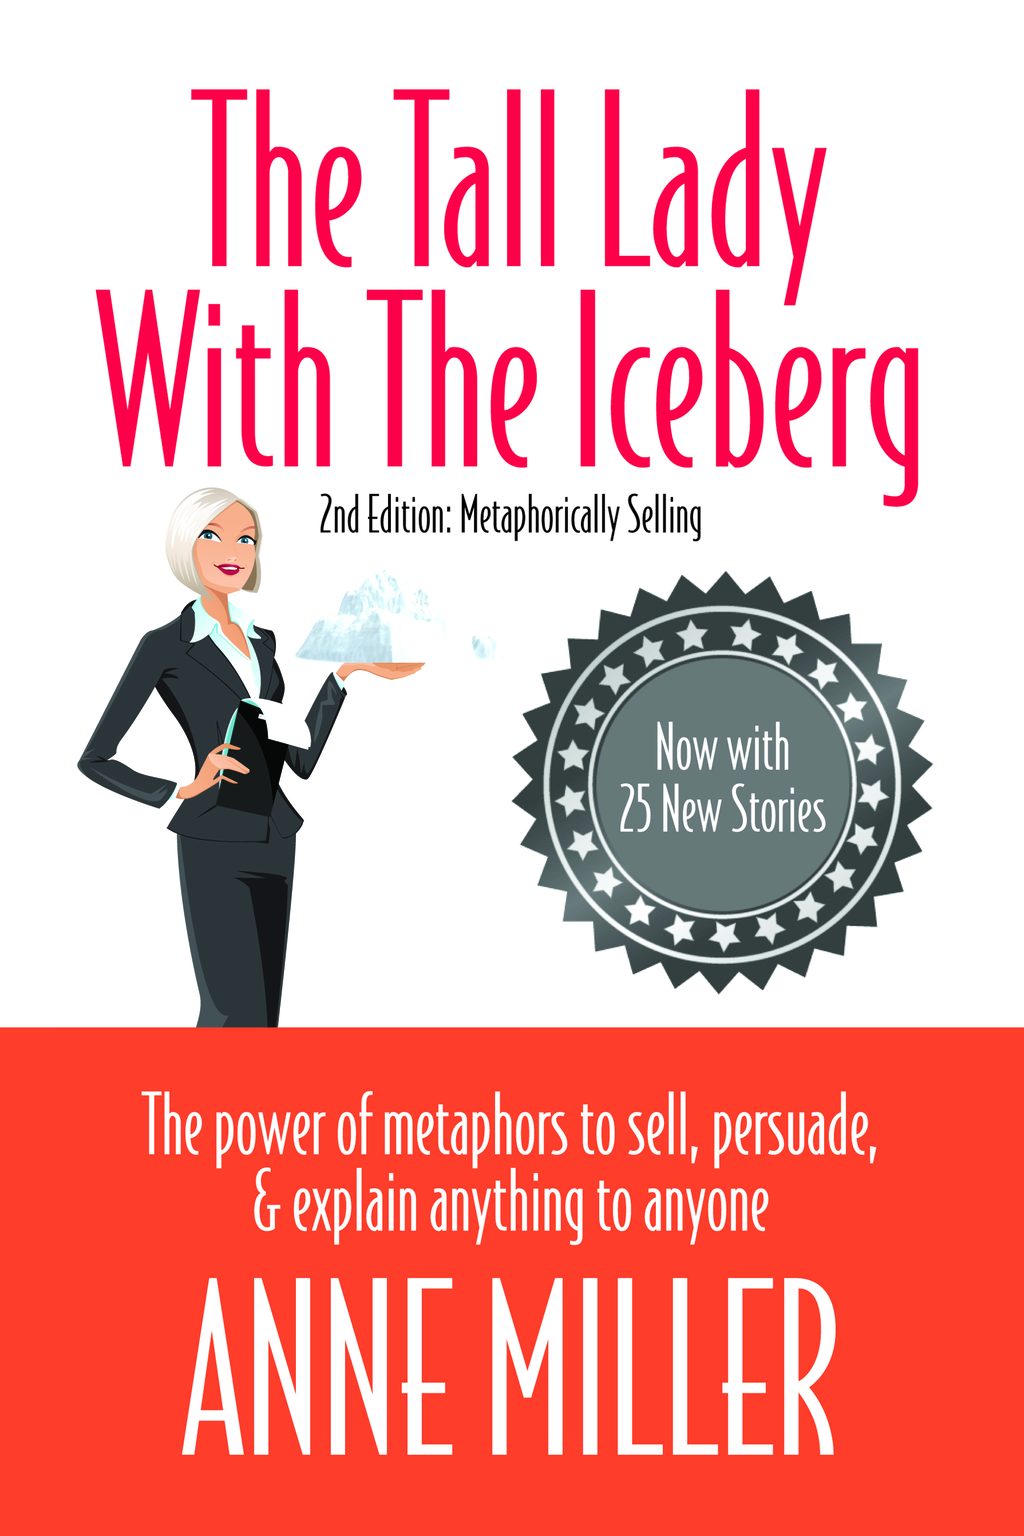 The Tall Lady With the Iceberg: The Power of Metaphor to Sell, Persuade & Explain Anything to Anyone By: Anne Miller